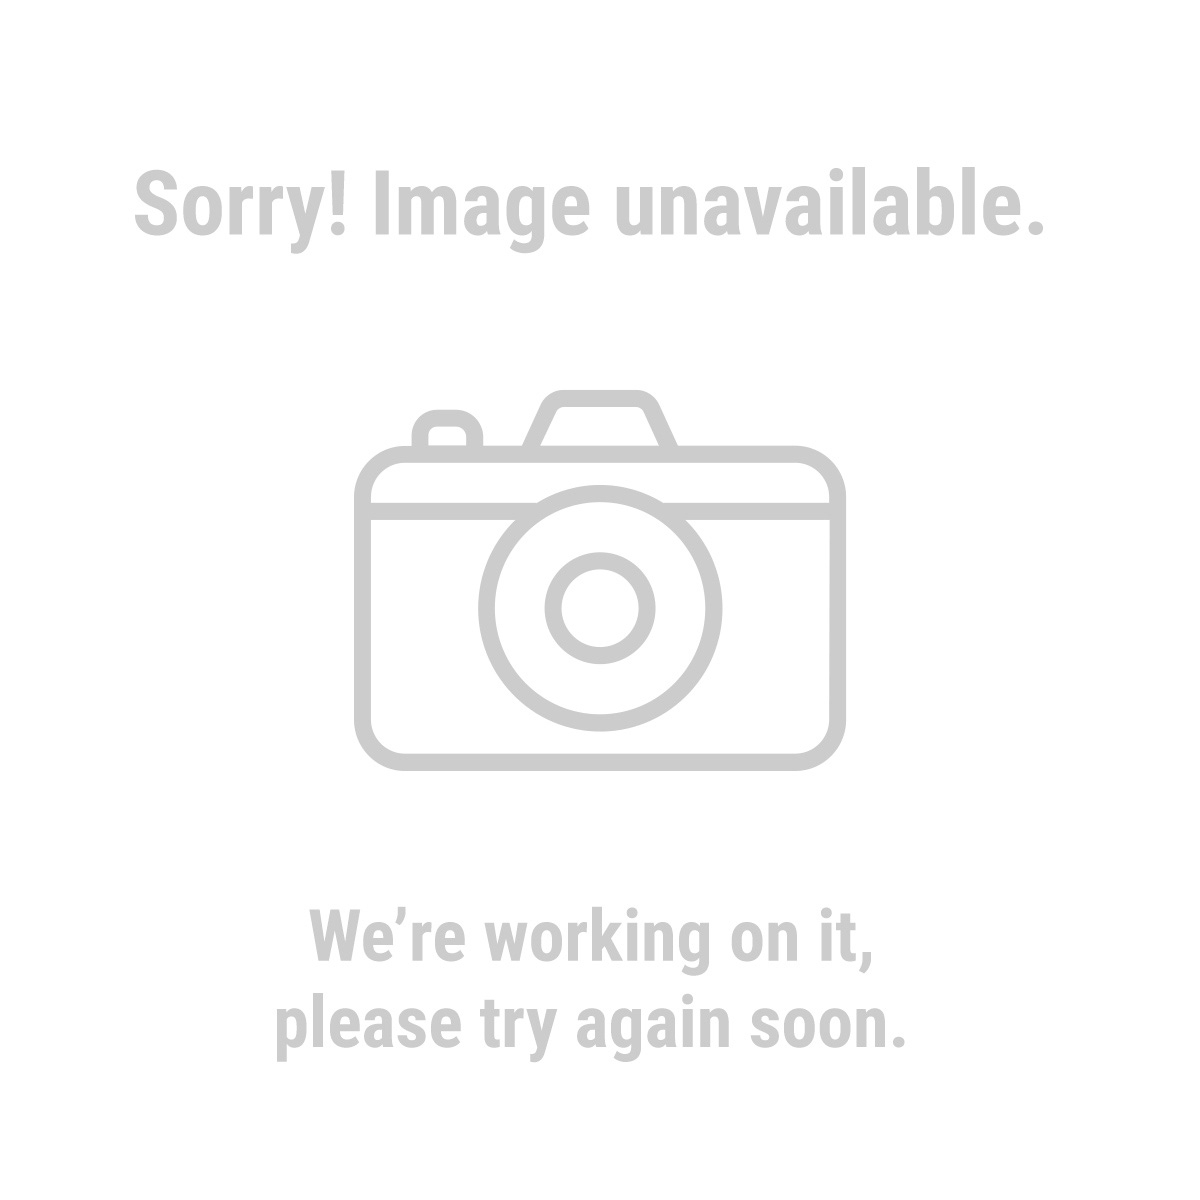 Pittsburgh 98523 3 Piece Folding Ball Hex Key Set